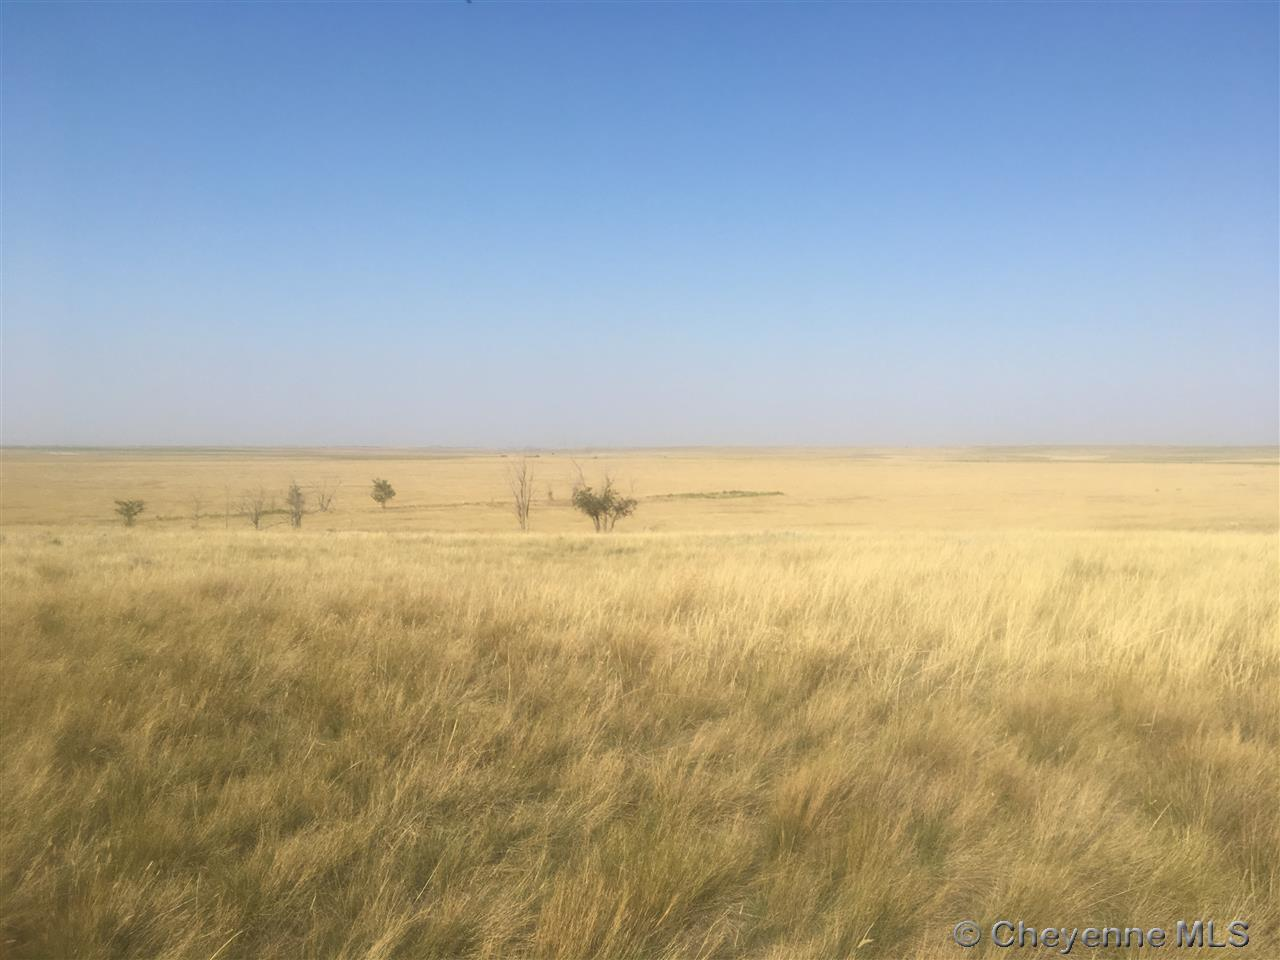 Farm / Ranch for Sale at 31 Road 164 31 Road 164 Pine Bluffs, Wyoming 82082 United States